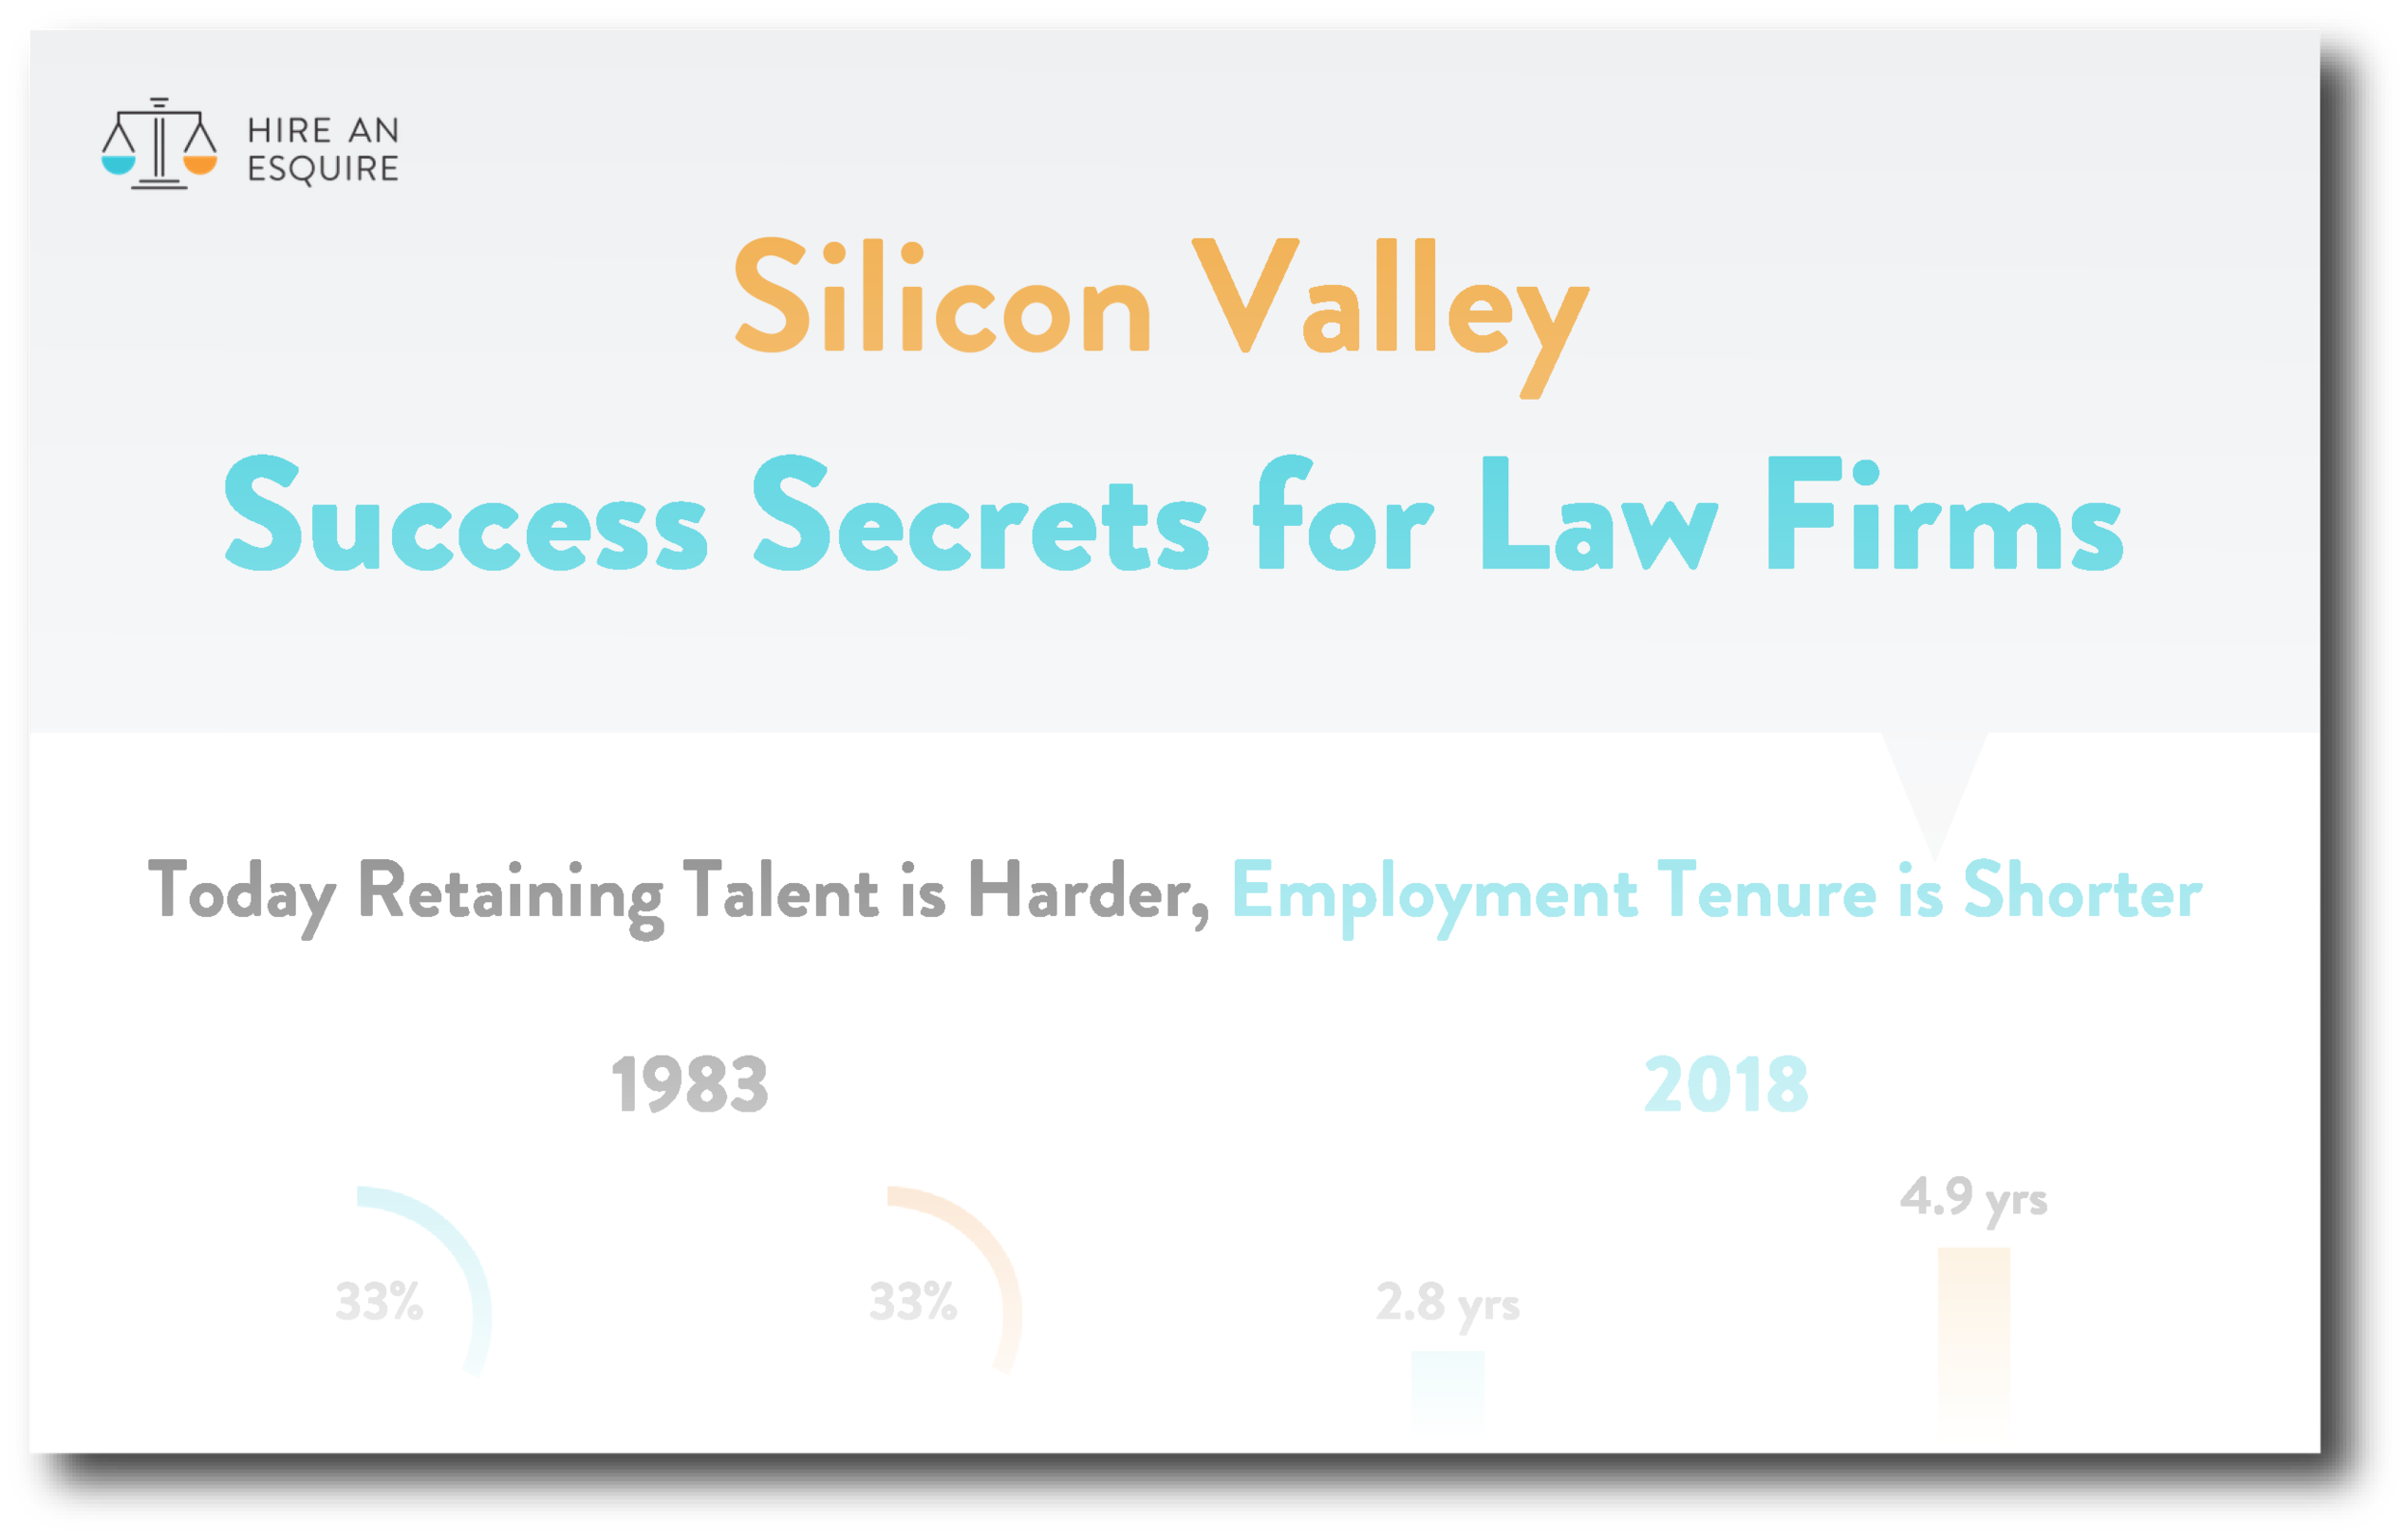 Silicon Valley Success Secrets 2018 - • Legal industry talent insights• Intrinsic employee motivators vs law firm anti-motivation practices• Tech company tested practices